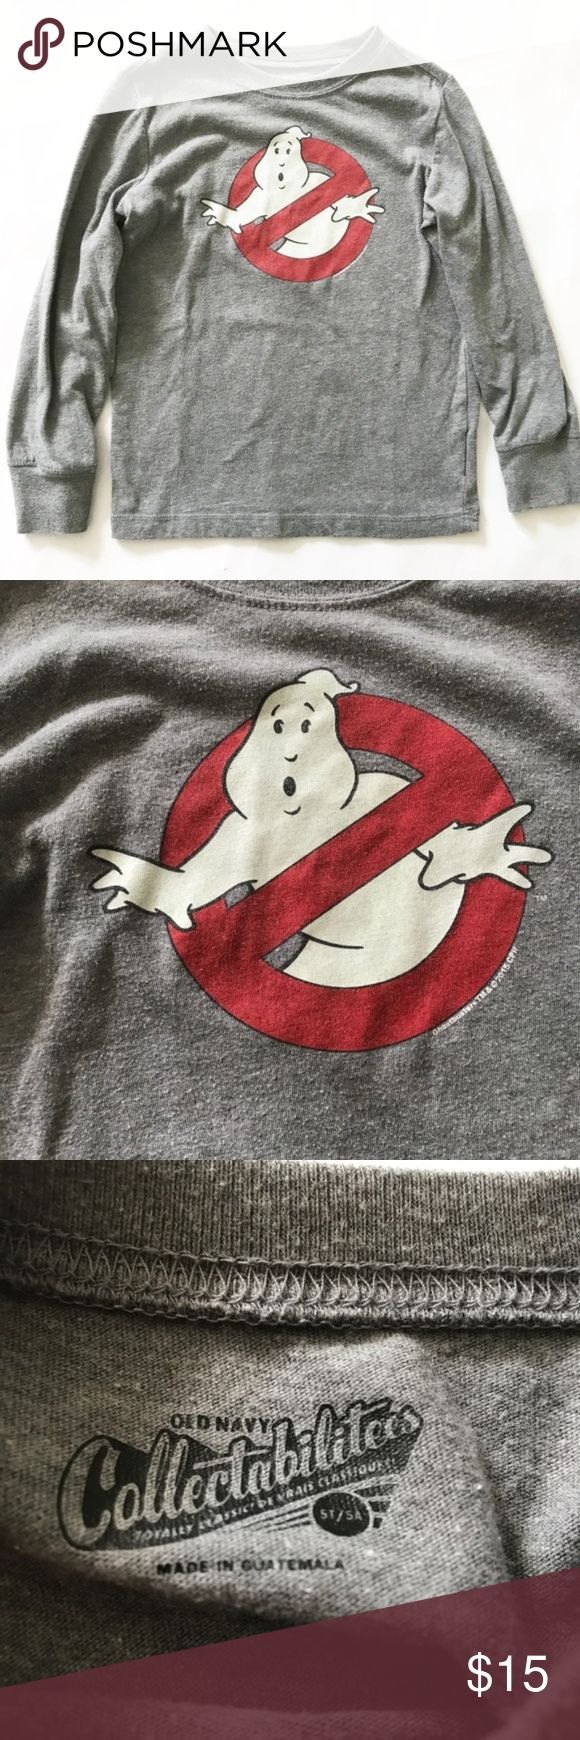 OLD NAVY [boys] Ghostbusters Gray long sleeve Top BOYS 5T OLD NAVY [boys] Ghostbusters Gray long sleeve Top t-shirt Old Navy Shirts & Tops Tees - Long Sleeve